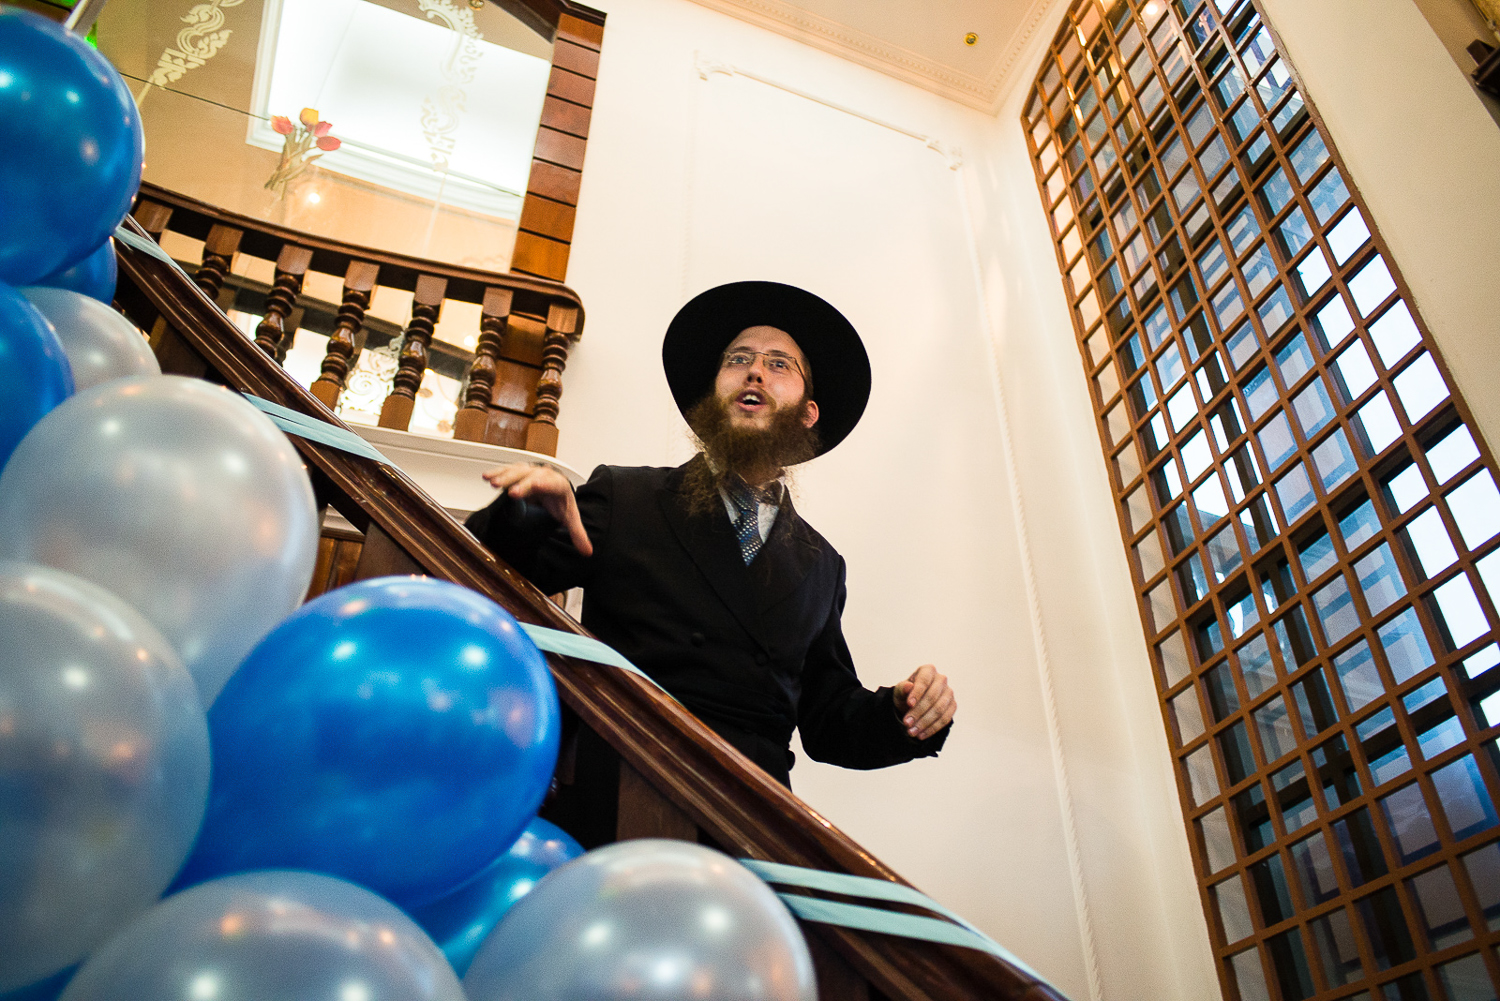 Rabbi Butman comes downstairs from the prayer room at the Chabad Center to invite all men upstairs to pray before the Bris (circumcision ceremony) of his newly born son.